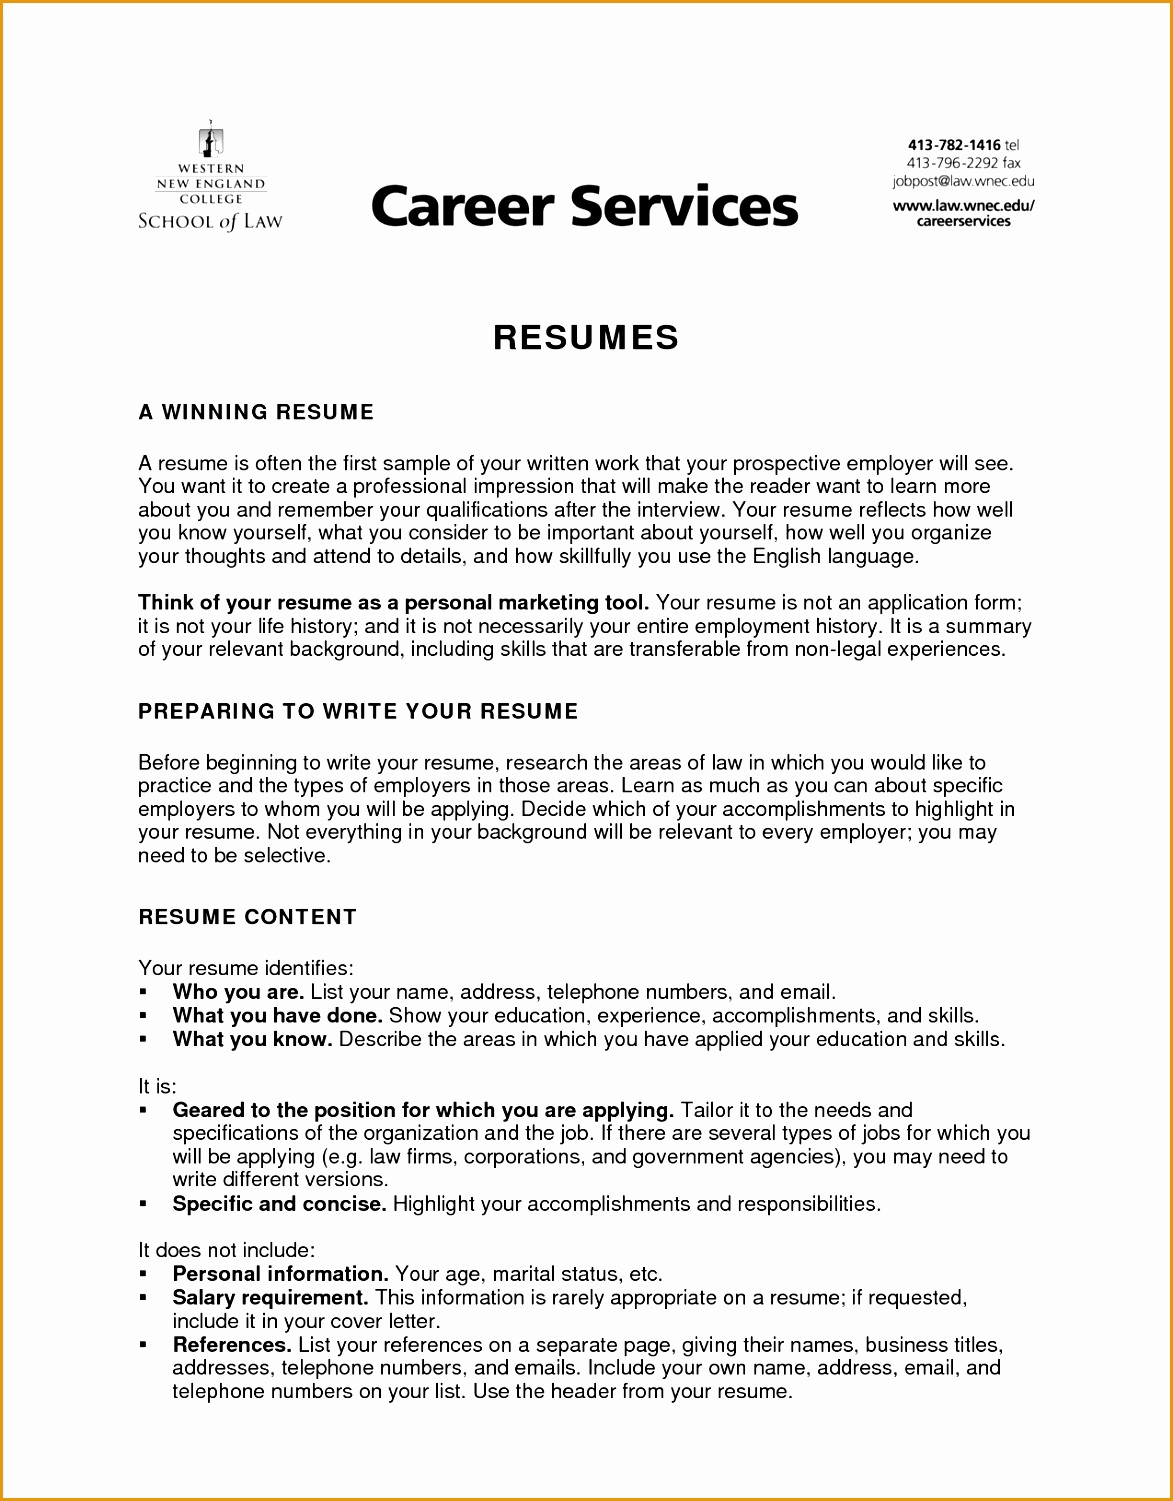 How To Write A Professional Resume For A Job 4 Writing Resume Objective Summary Free Samples